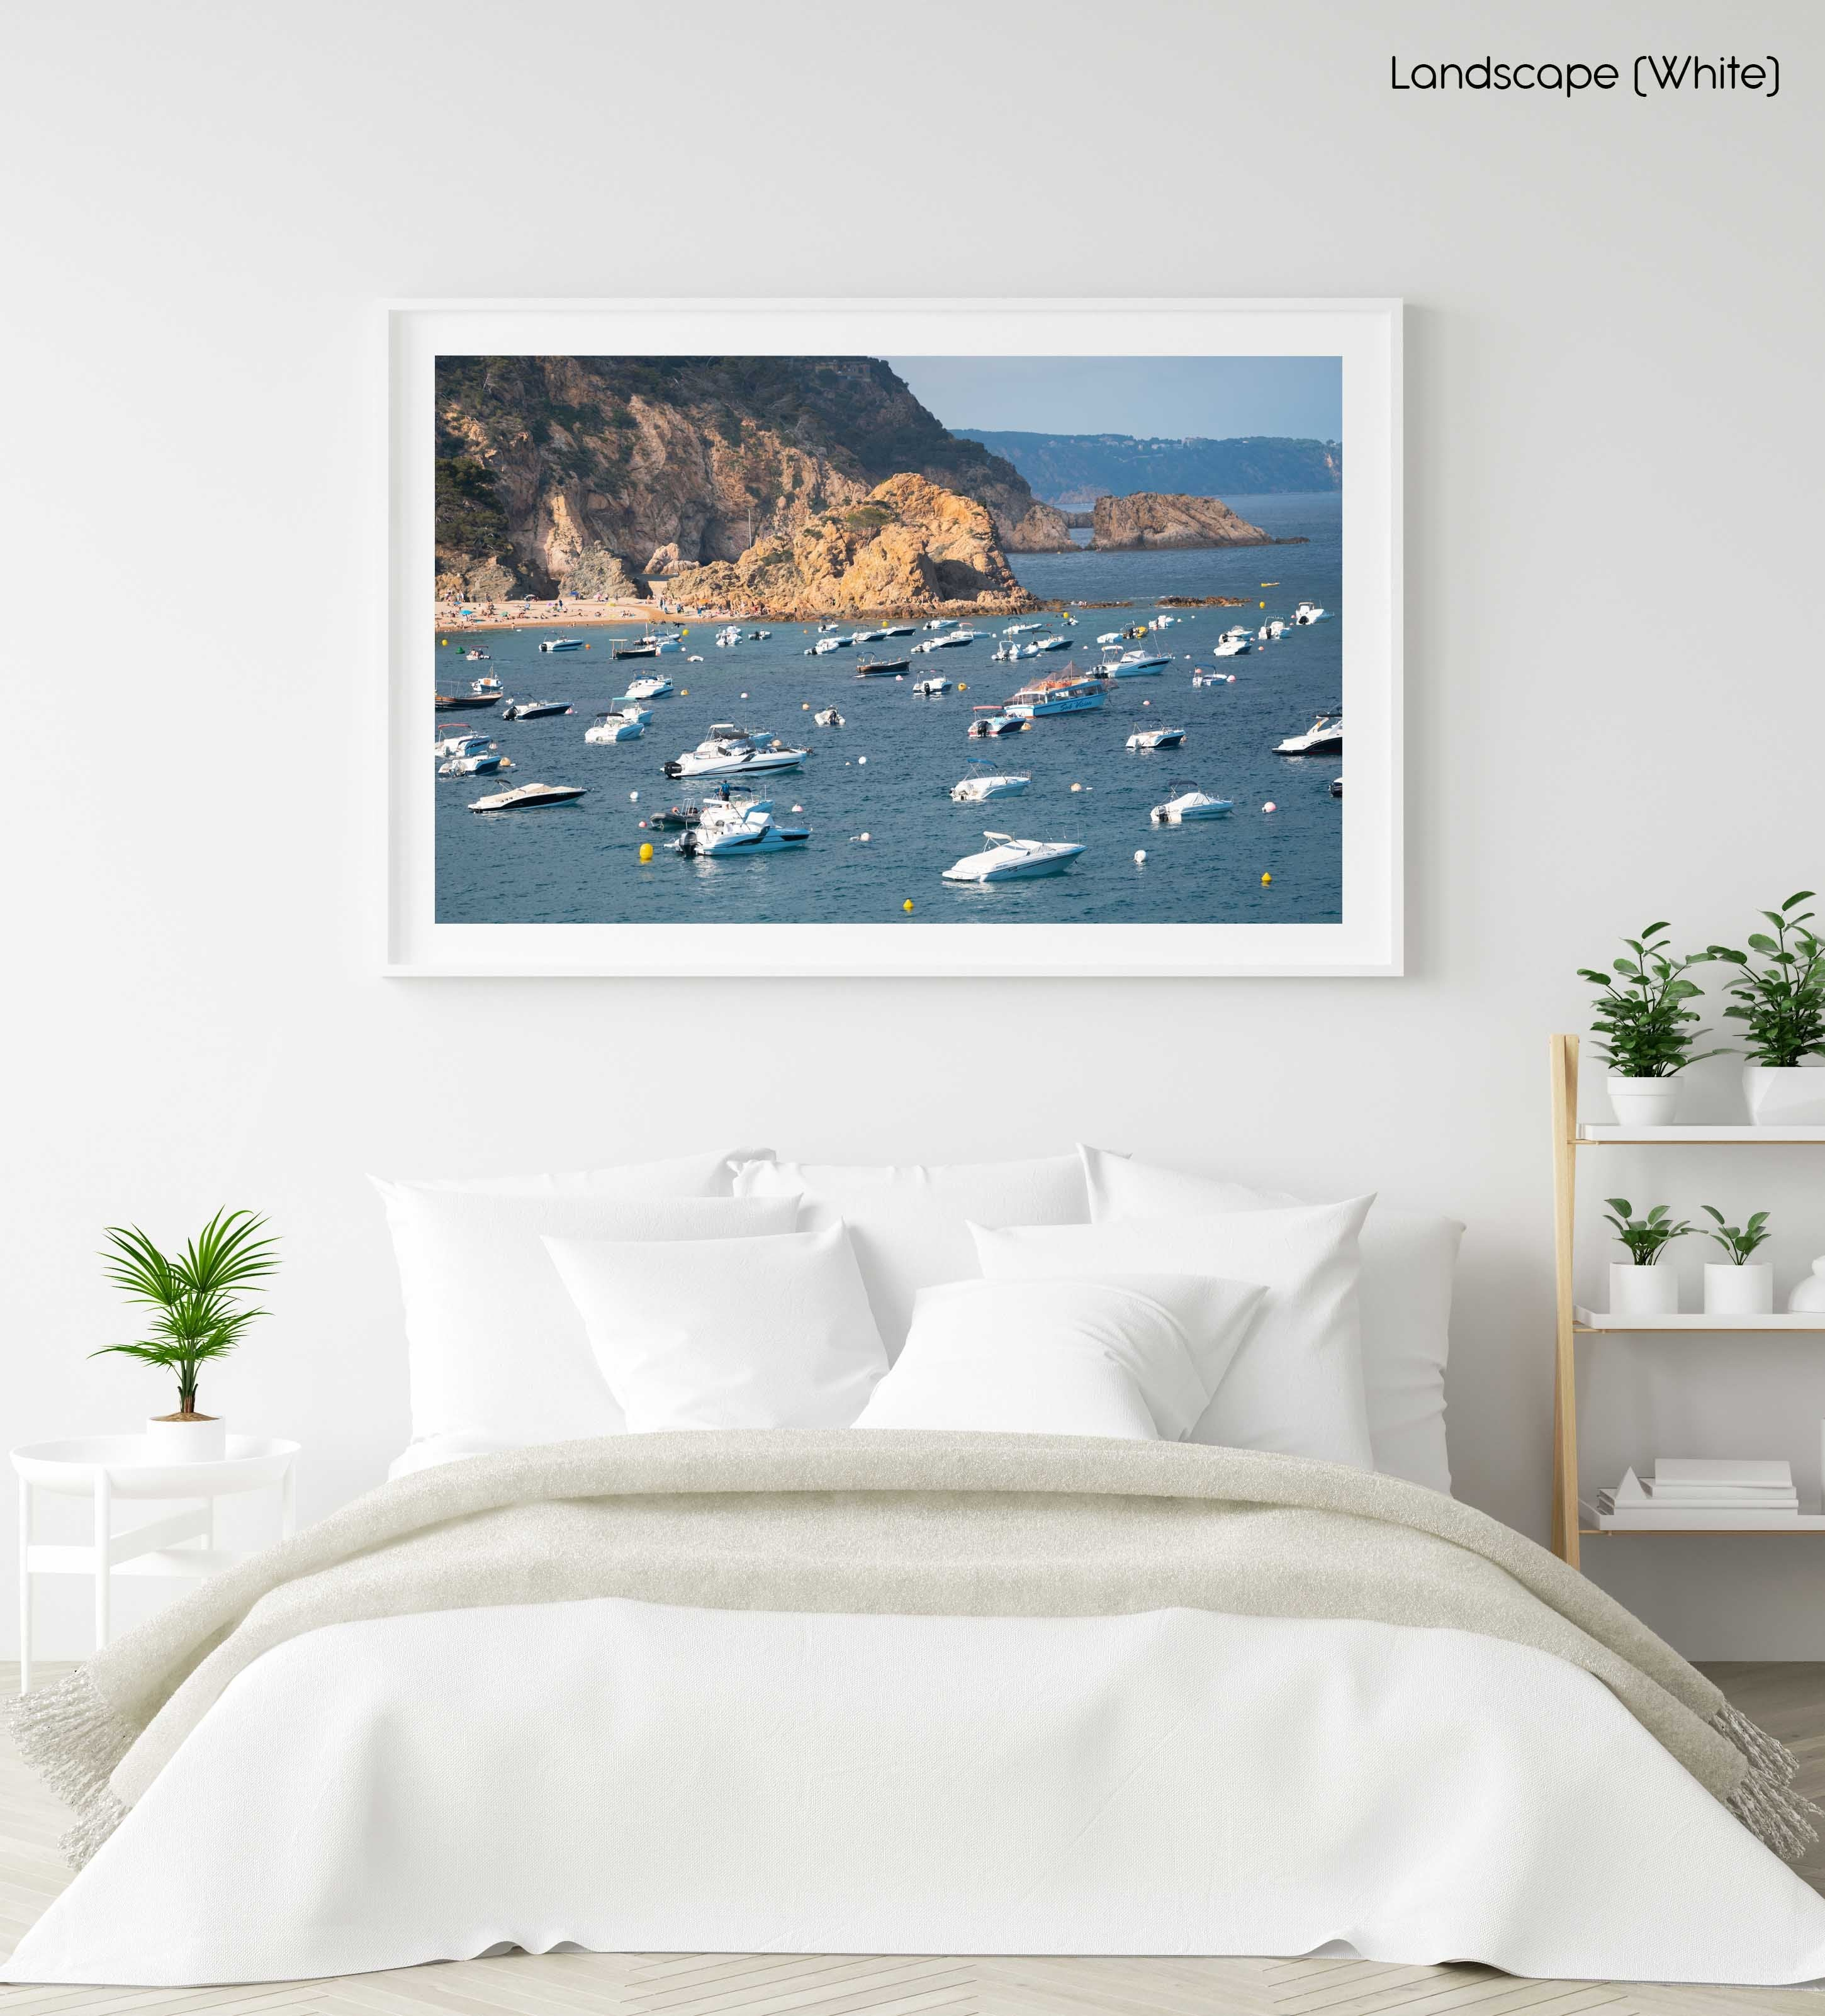 Many boats anchored off in ocean along Tossa de Mar beach in Spain in a white fine art frame